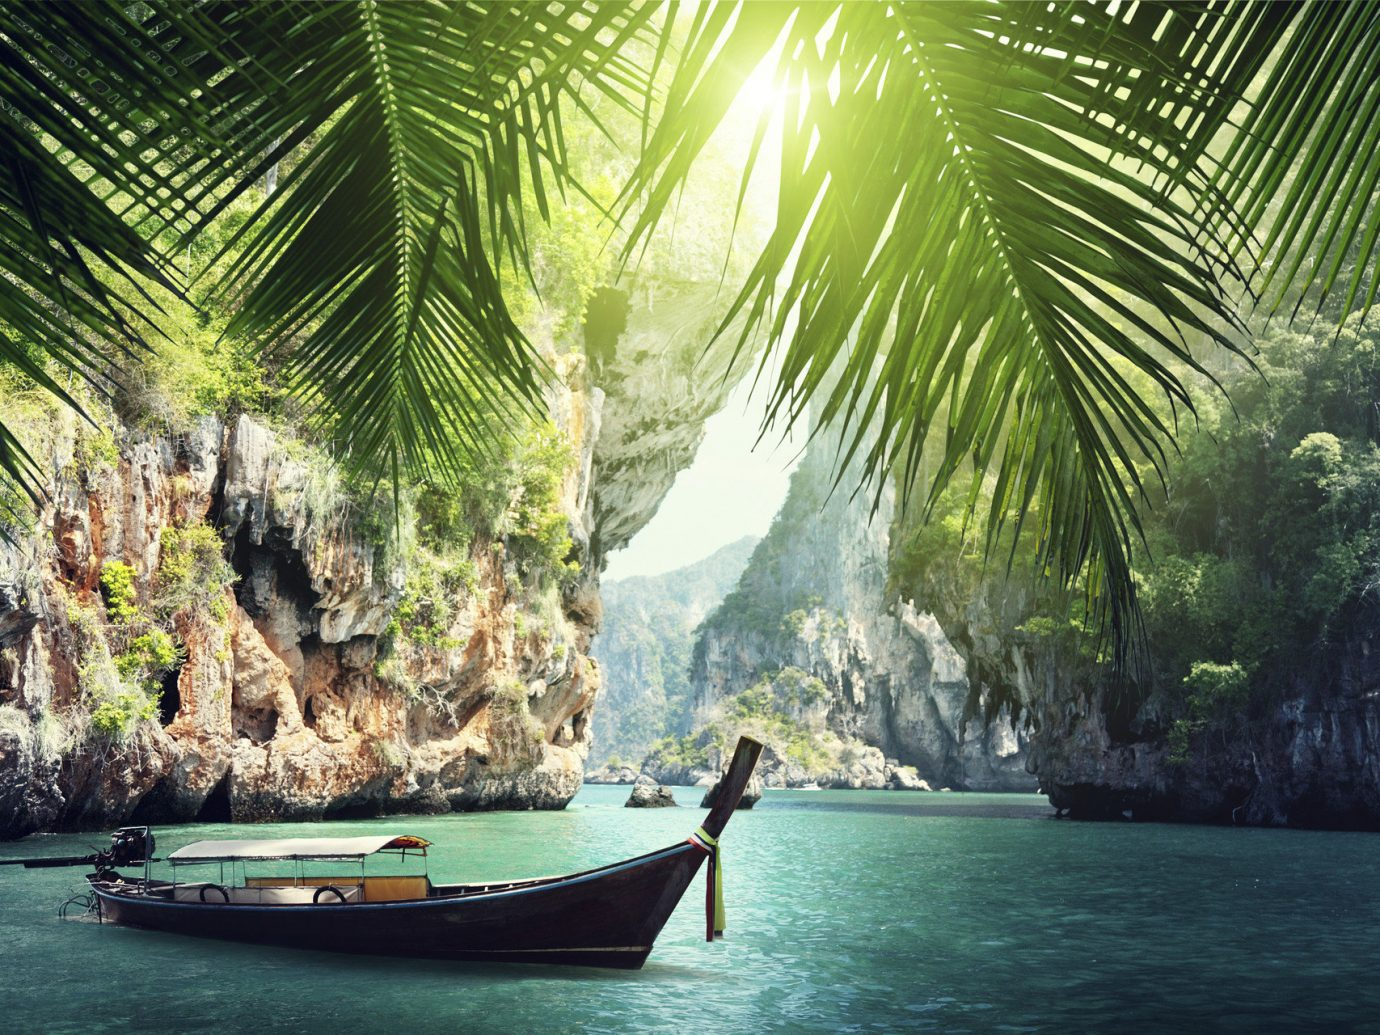 Offbeat water outdoor Boat green tree tropics plant Jungle arecales vehicle sunlight palm family rainforest palm